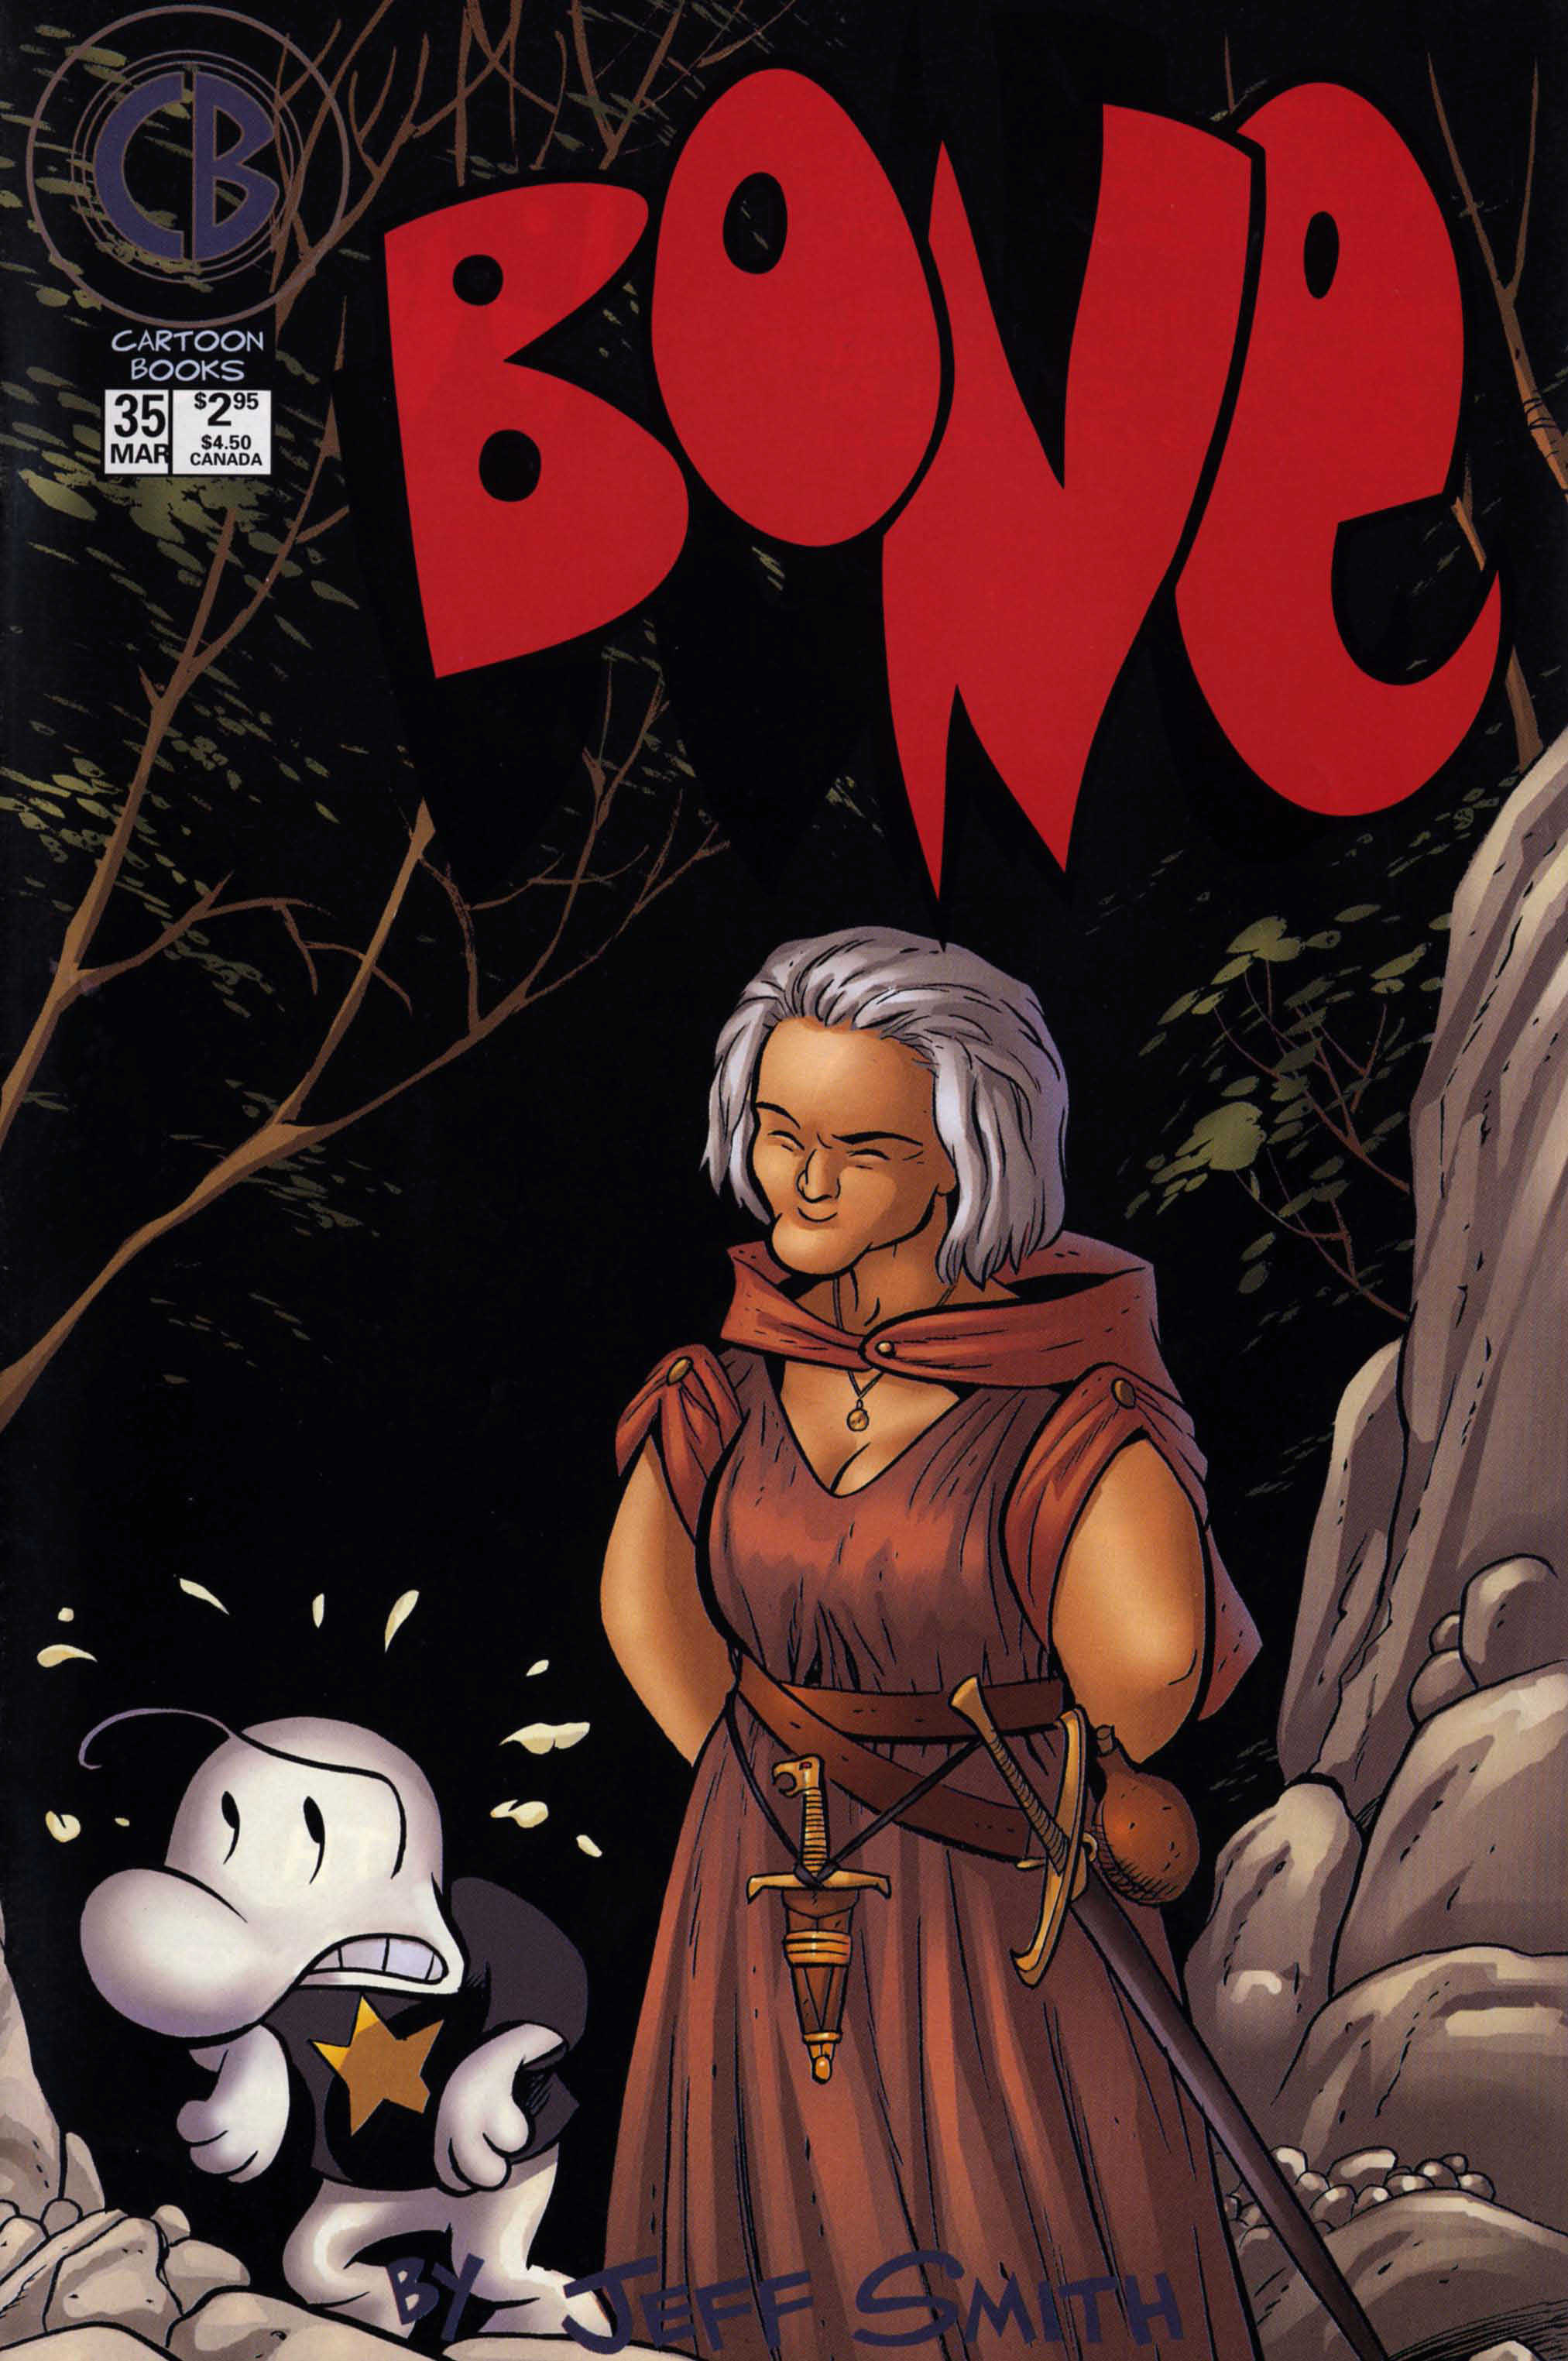 Bone 1991 Issue 35